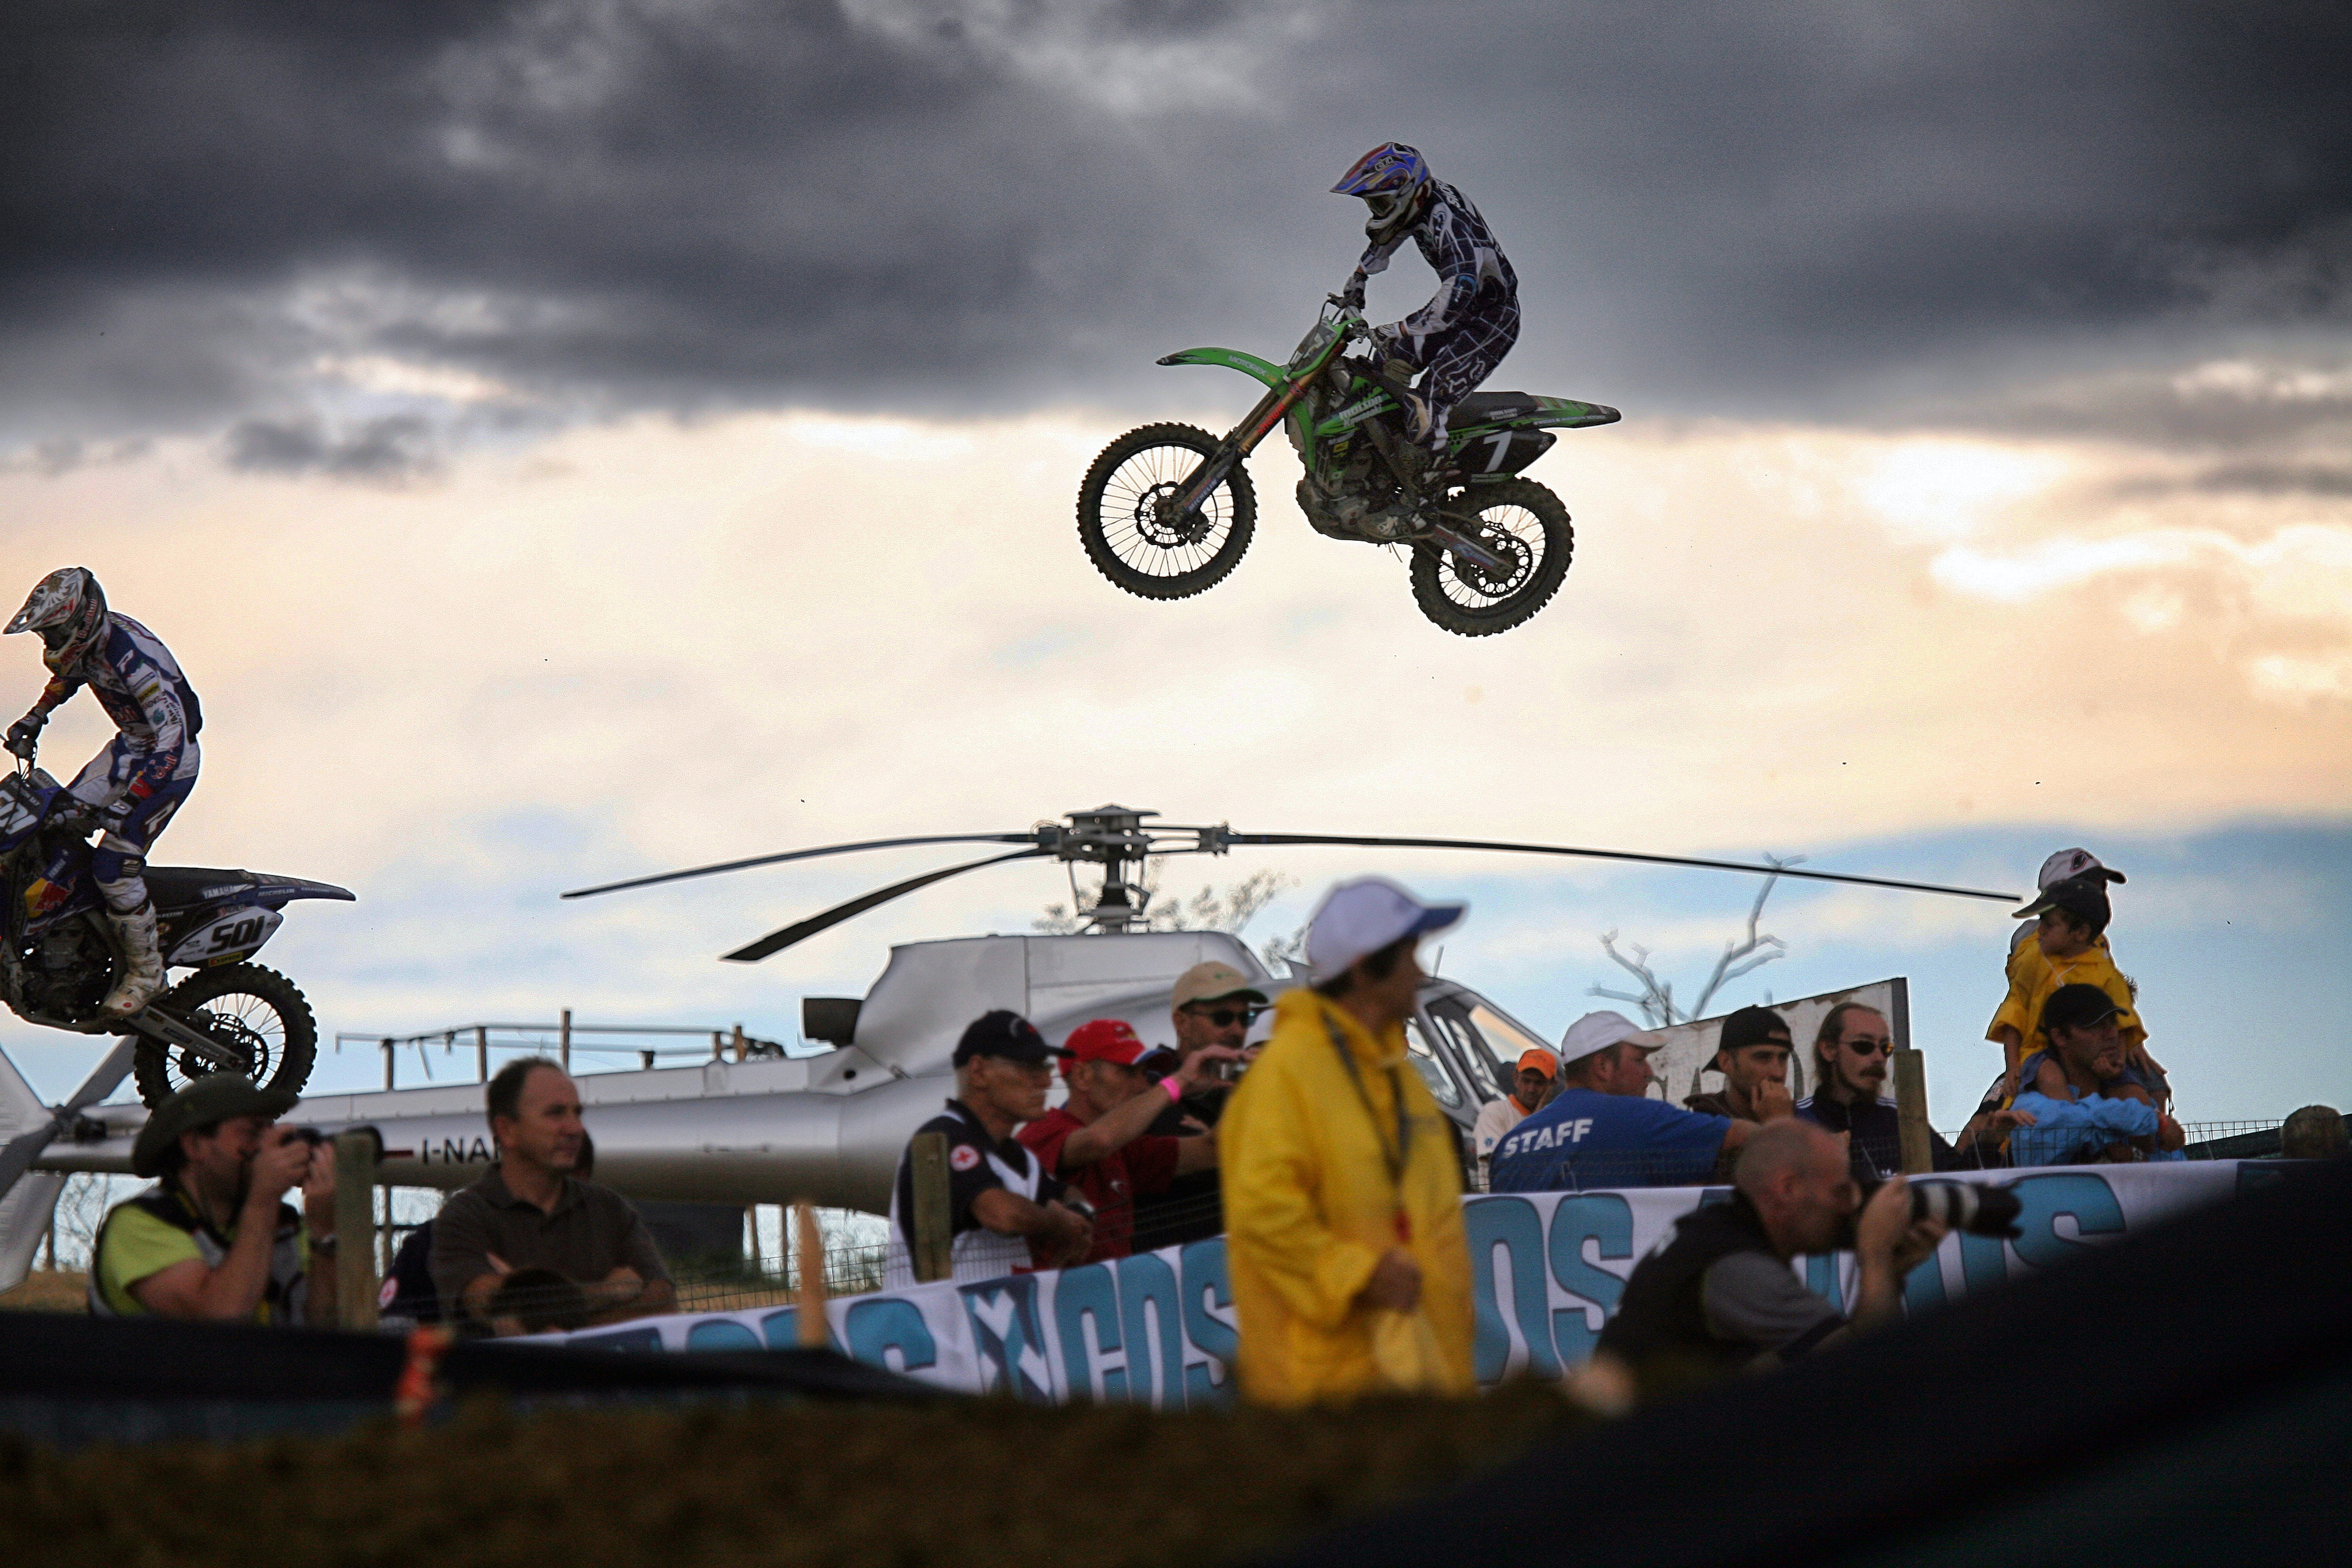 man riding motocross dirt bike over crown of people during daytime